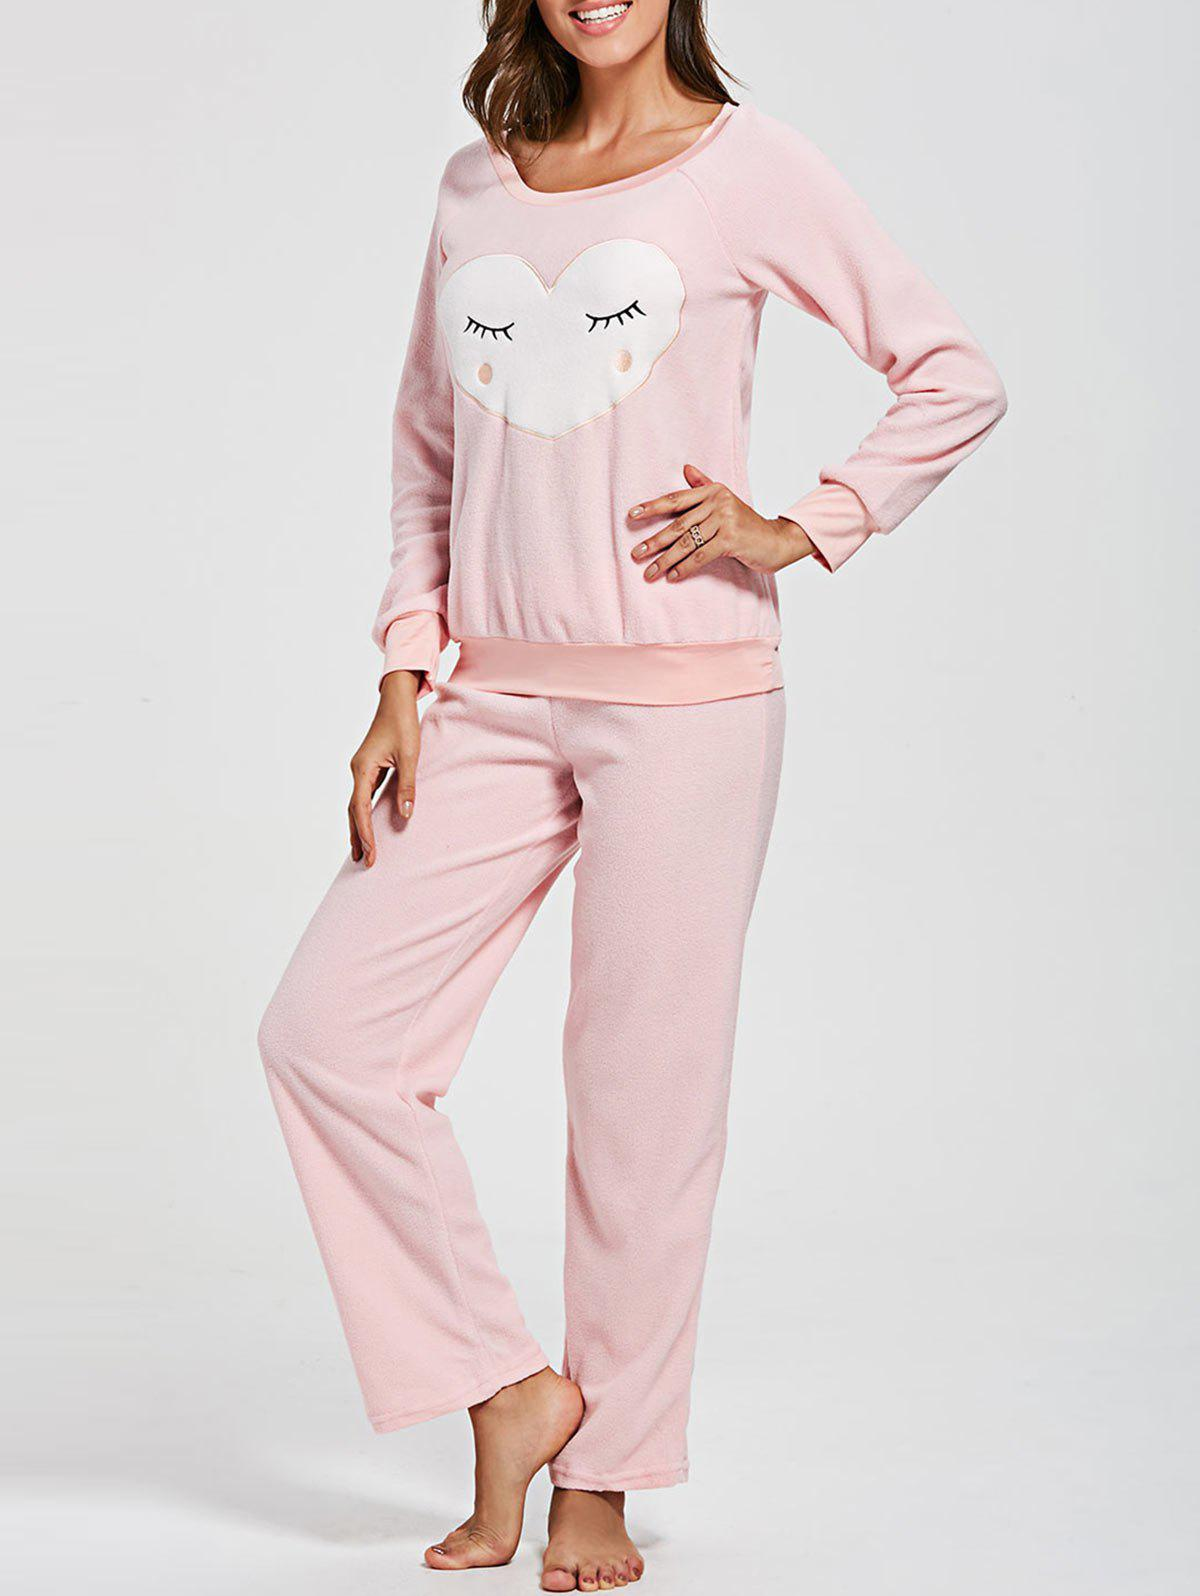 Sweat-shirt en molleton de coeur avec un ensemble de salon de pantalons - ROSE PÂLE S